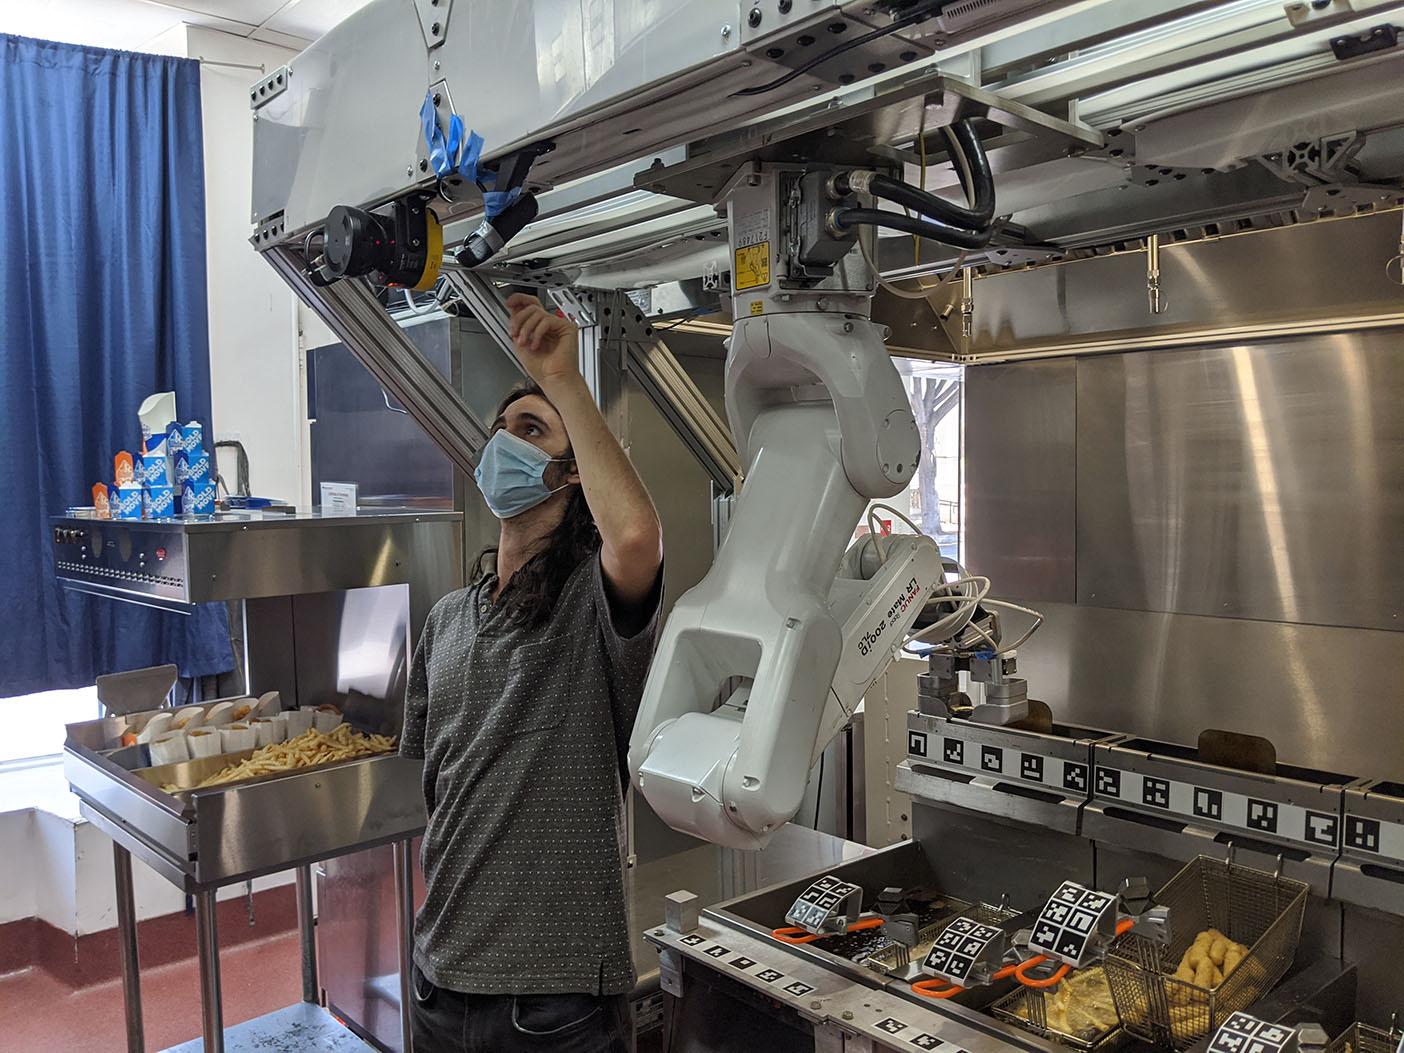 Flippy Robot-on-a-Rail (ROAR), can cook up to 19 food items, and is mounted on a recessed overhead rail to increase safety for catering staff